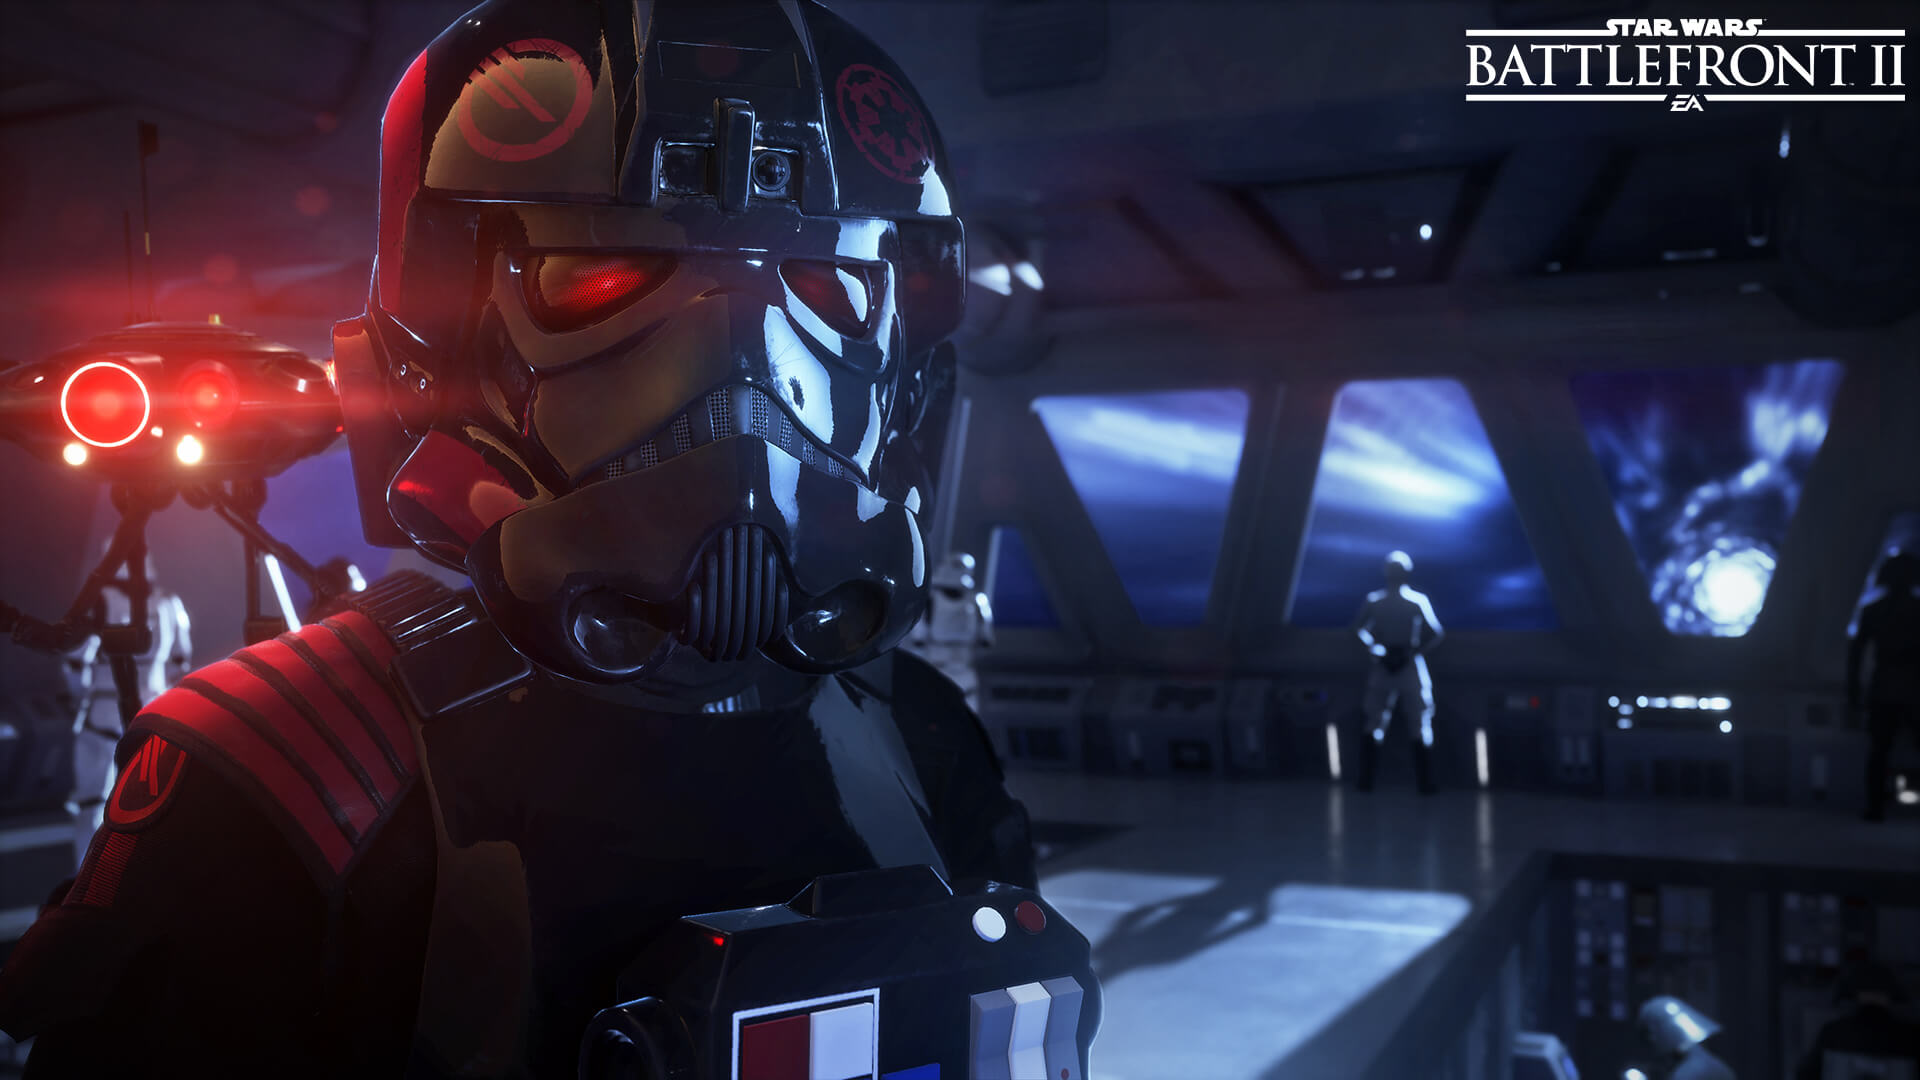 http://www.polygon.com/2017/4/15/15312904/star-wars-battlefront-2-single-player-story-campaign-details-dice-ea-motive